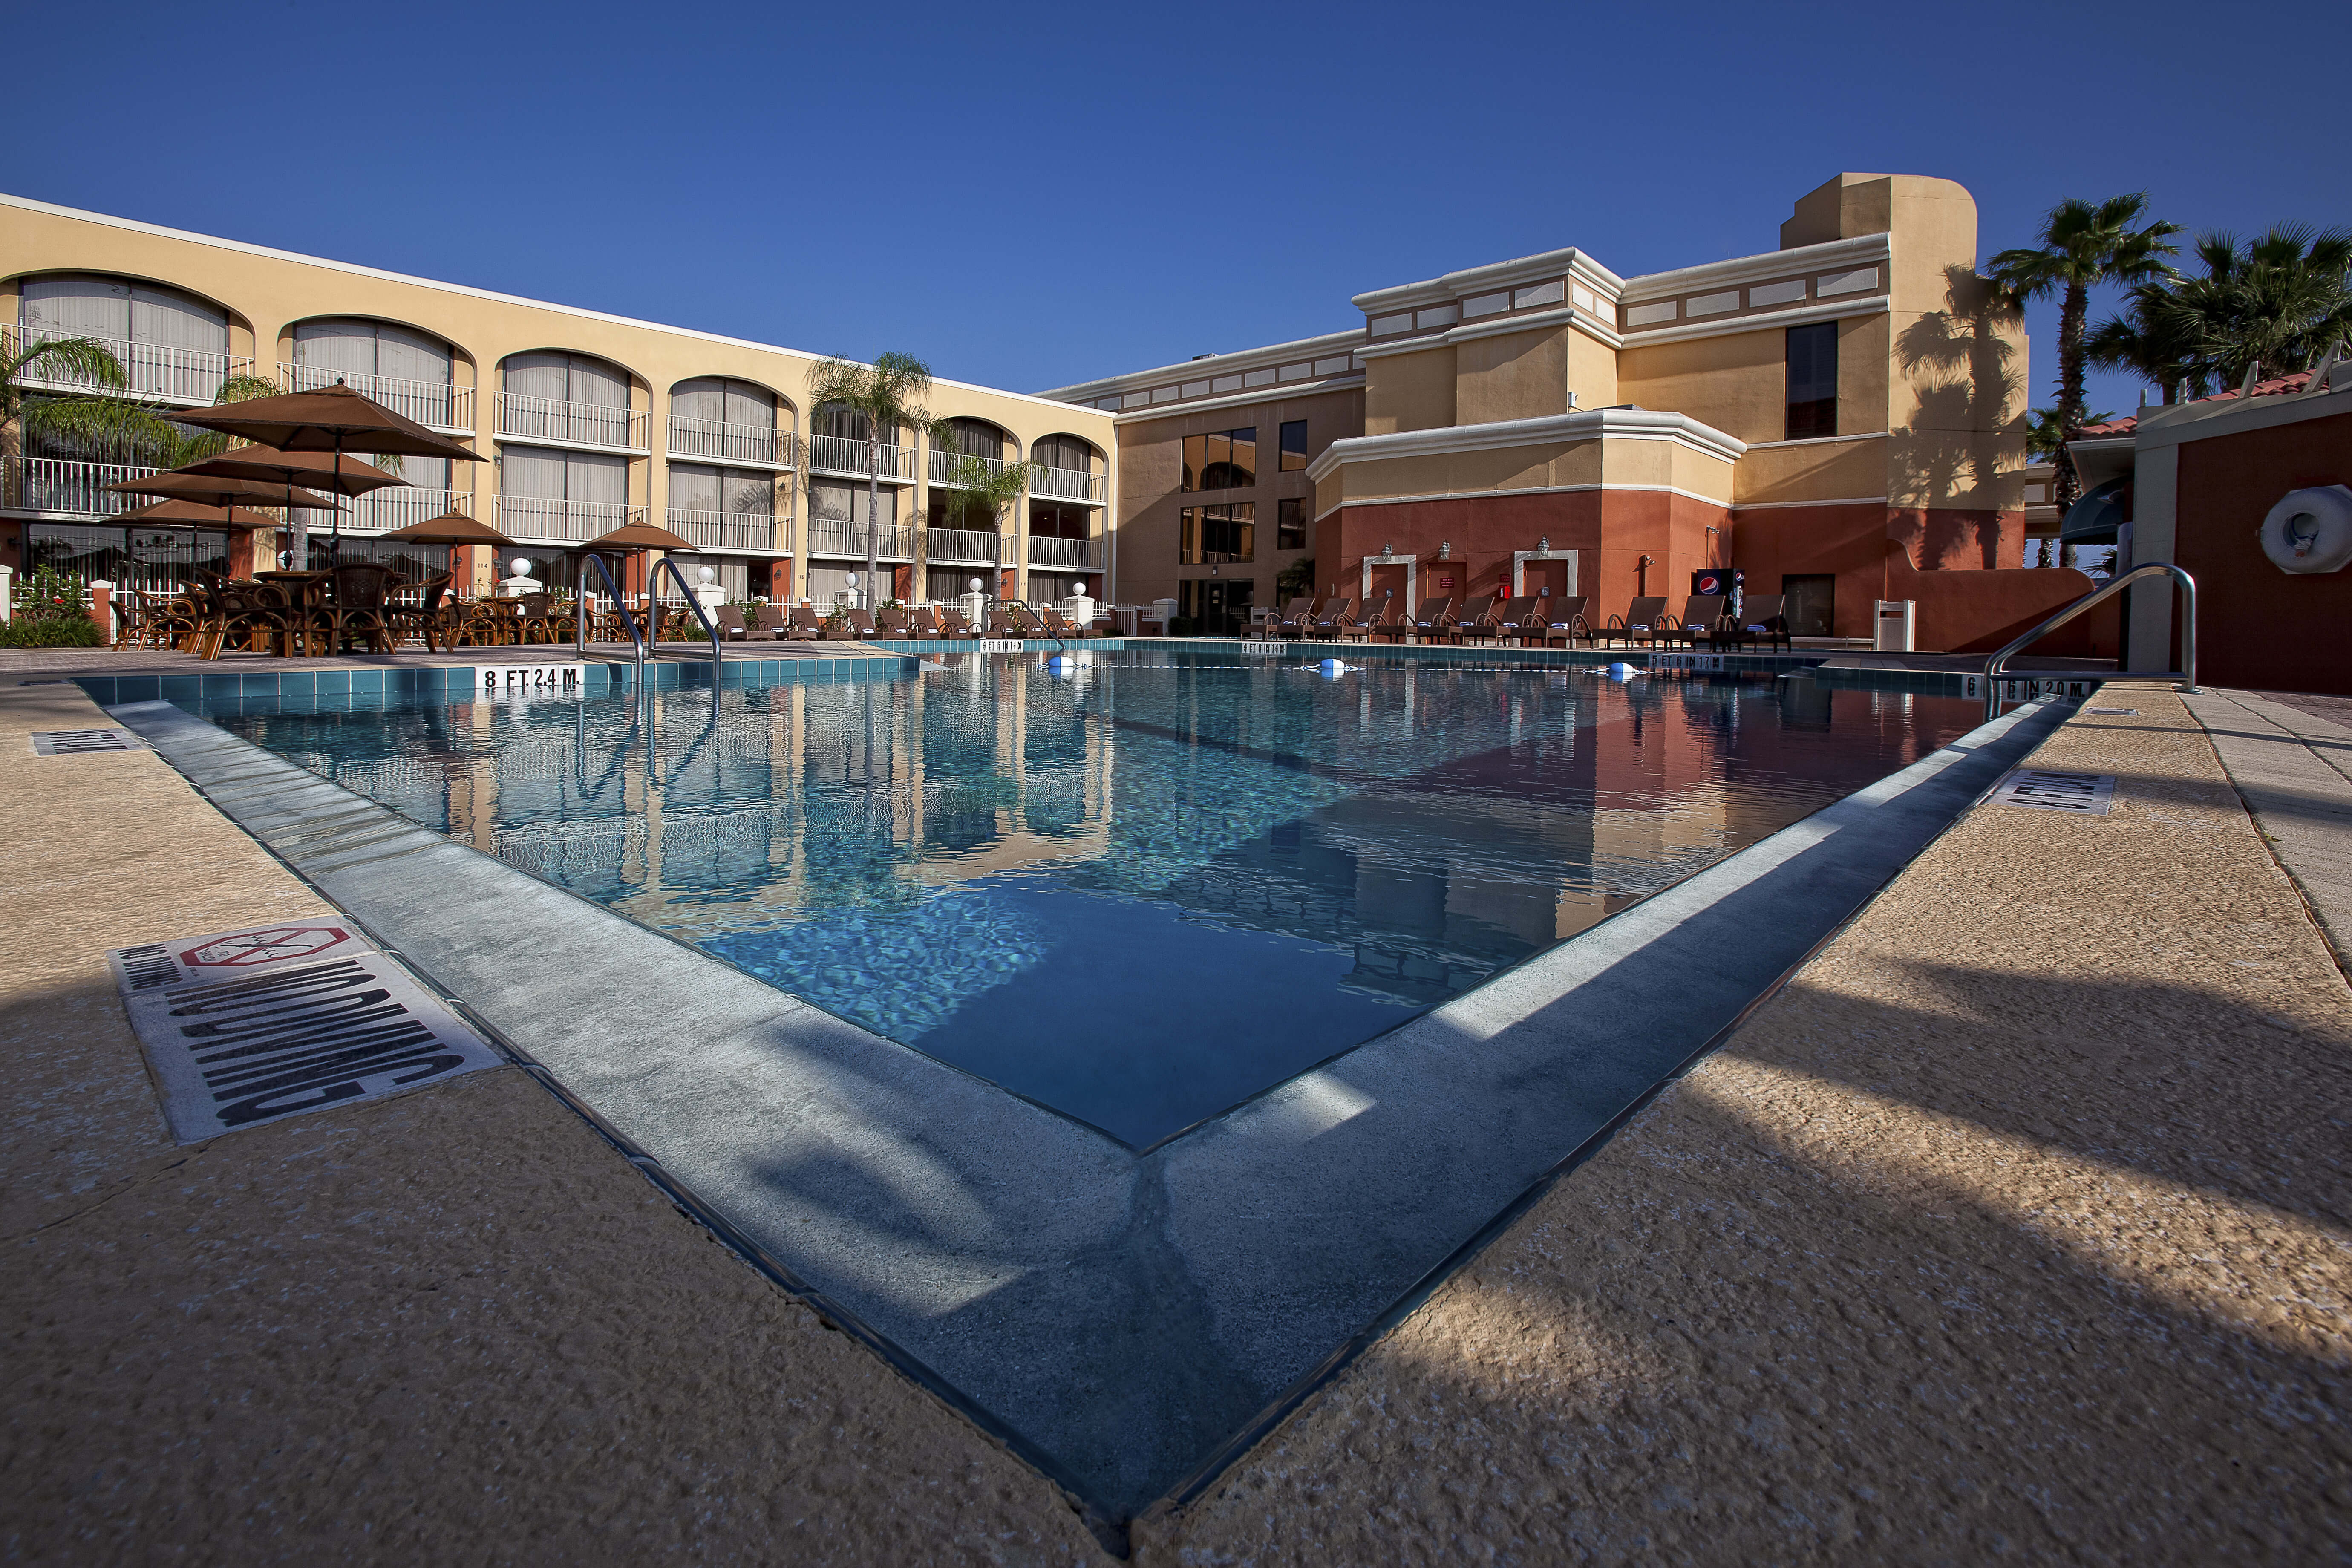 Heated outdoor pool surrounded by lounge chairs and tables with umbrellas | Westgate Towers Resort